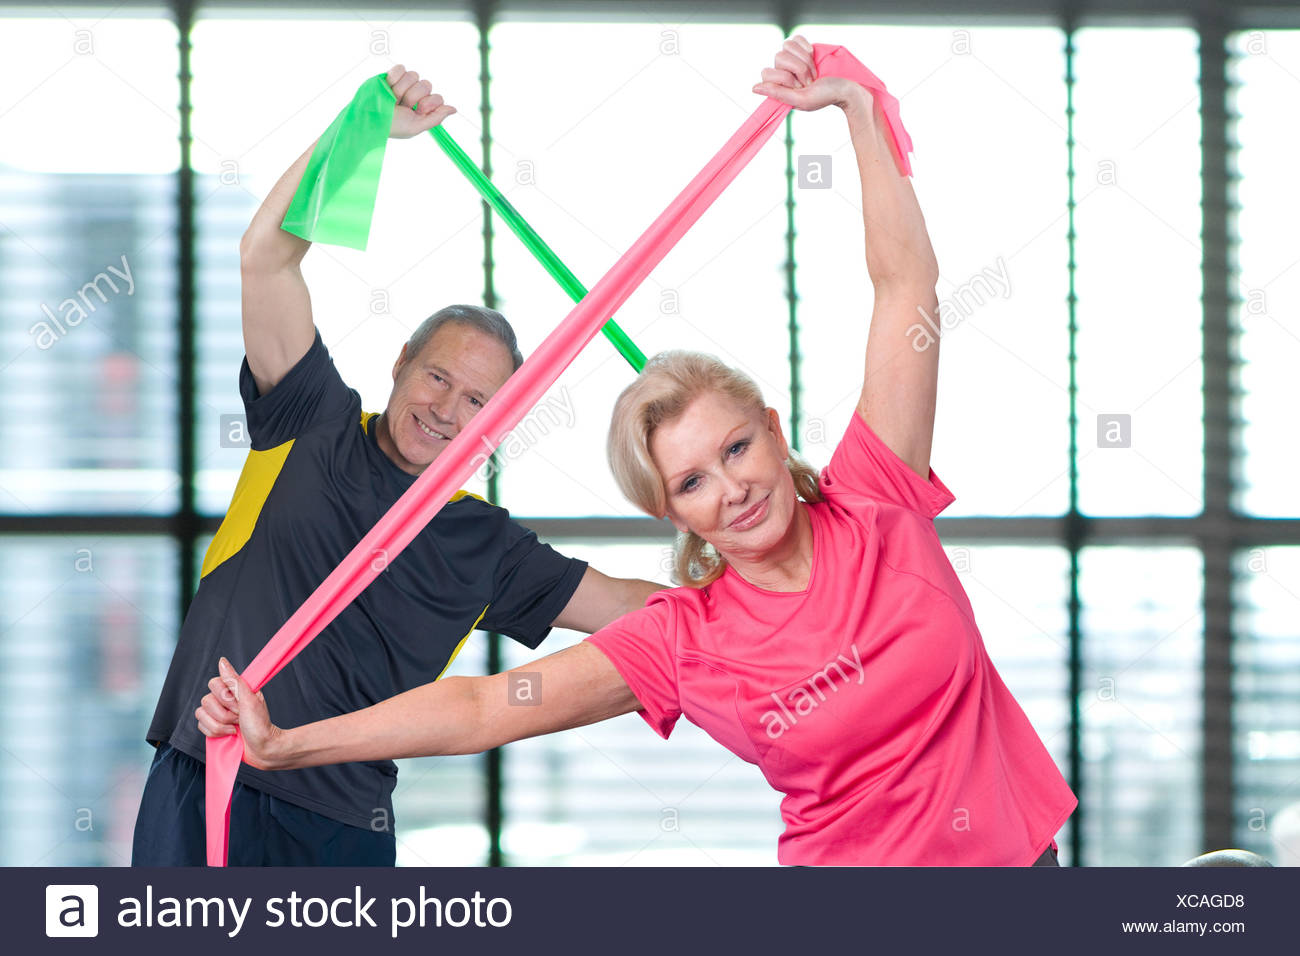 Portrait of couple stretching with resistance bands overhead - Stock Image